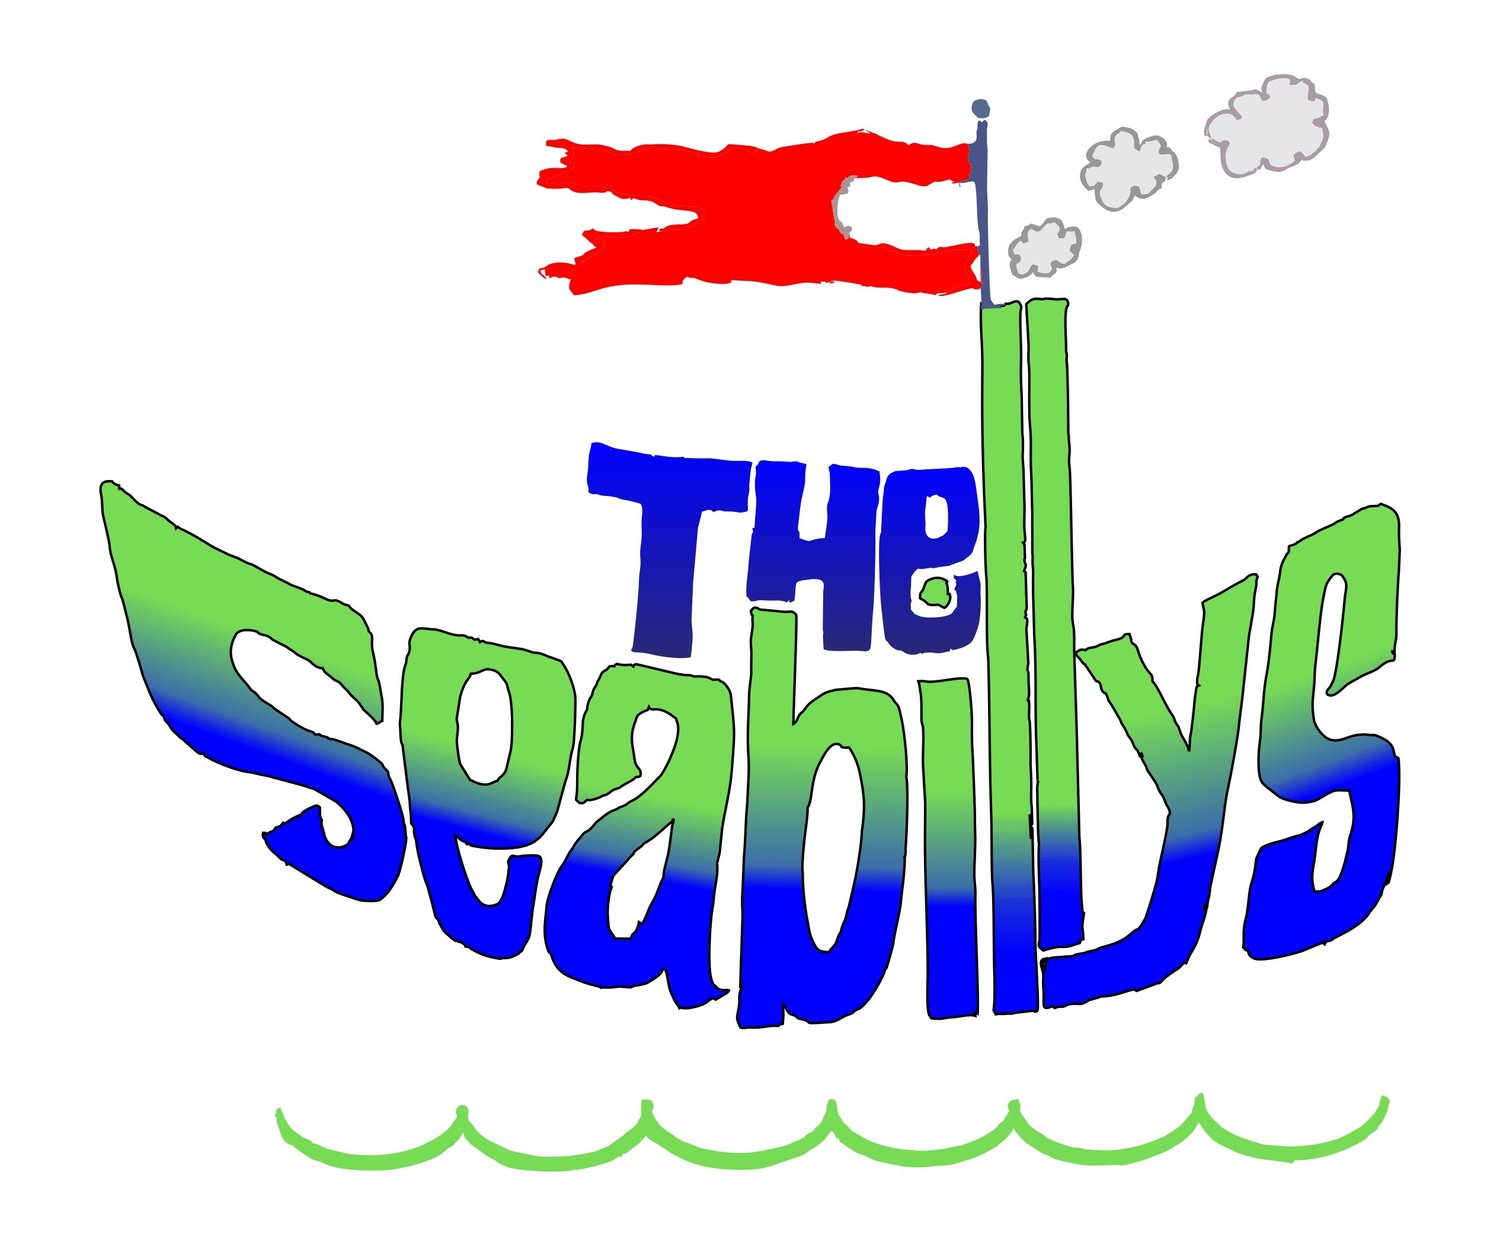 The Seabillys